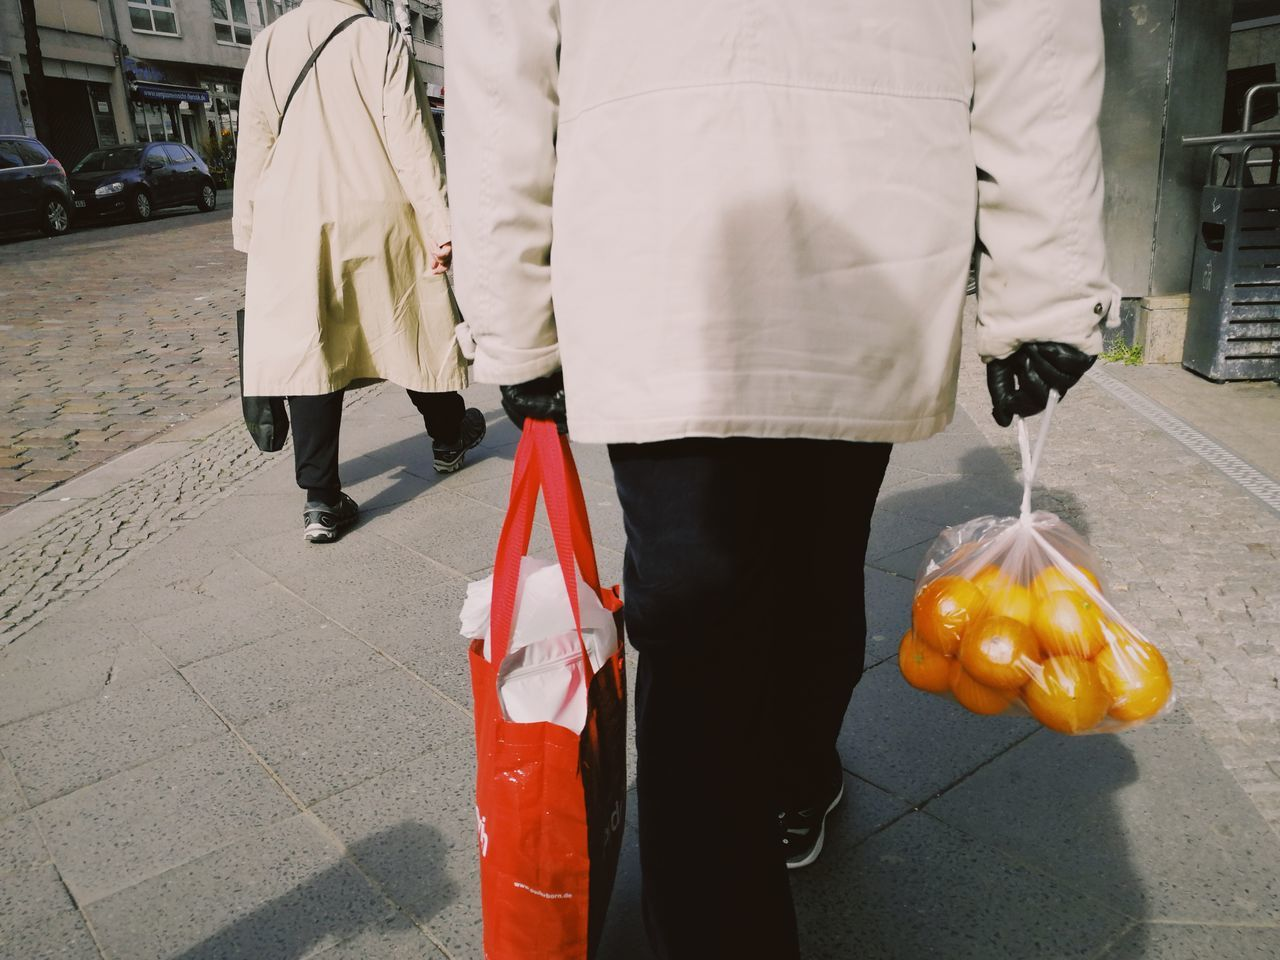 Midsection Of Man With Shopping Bags